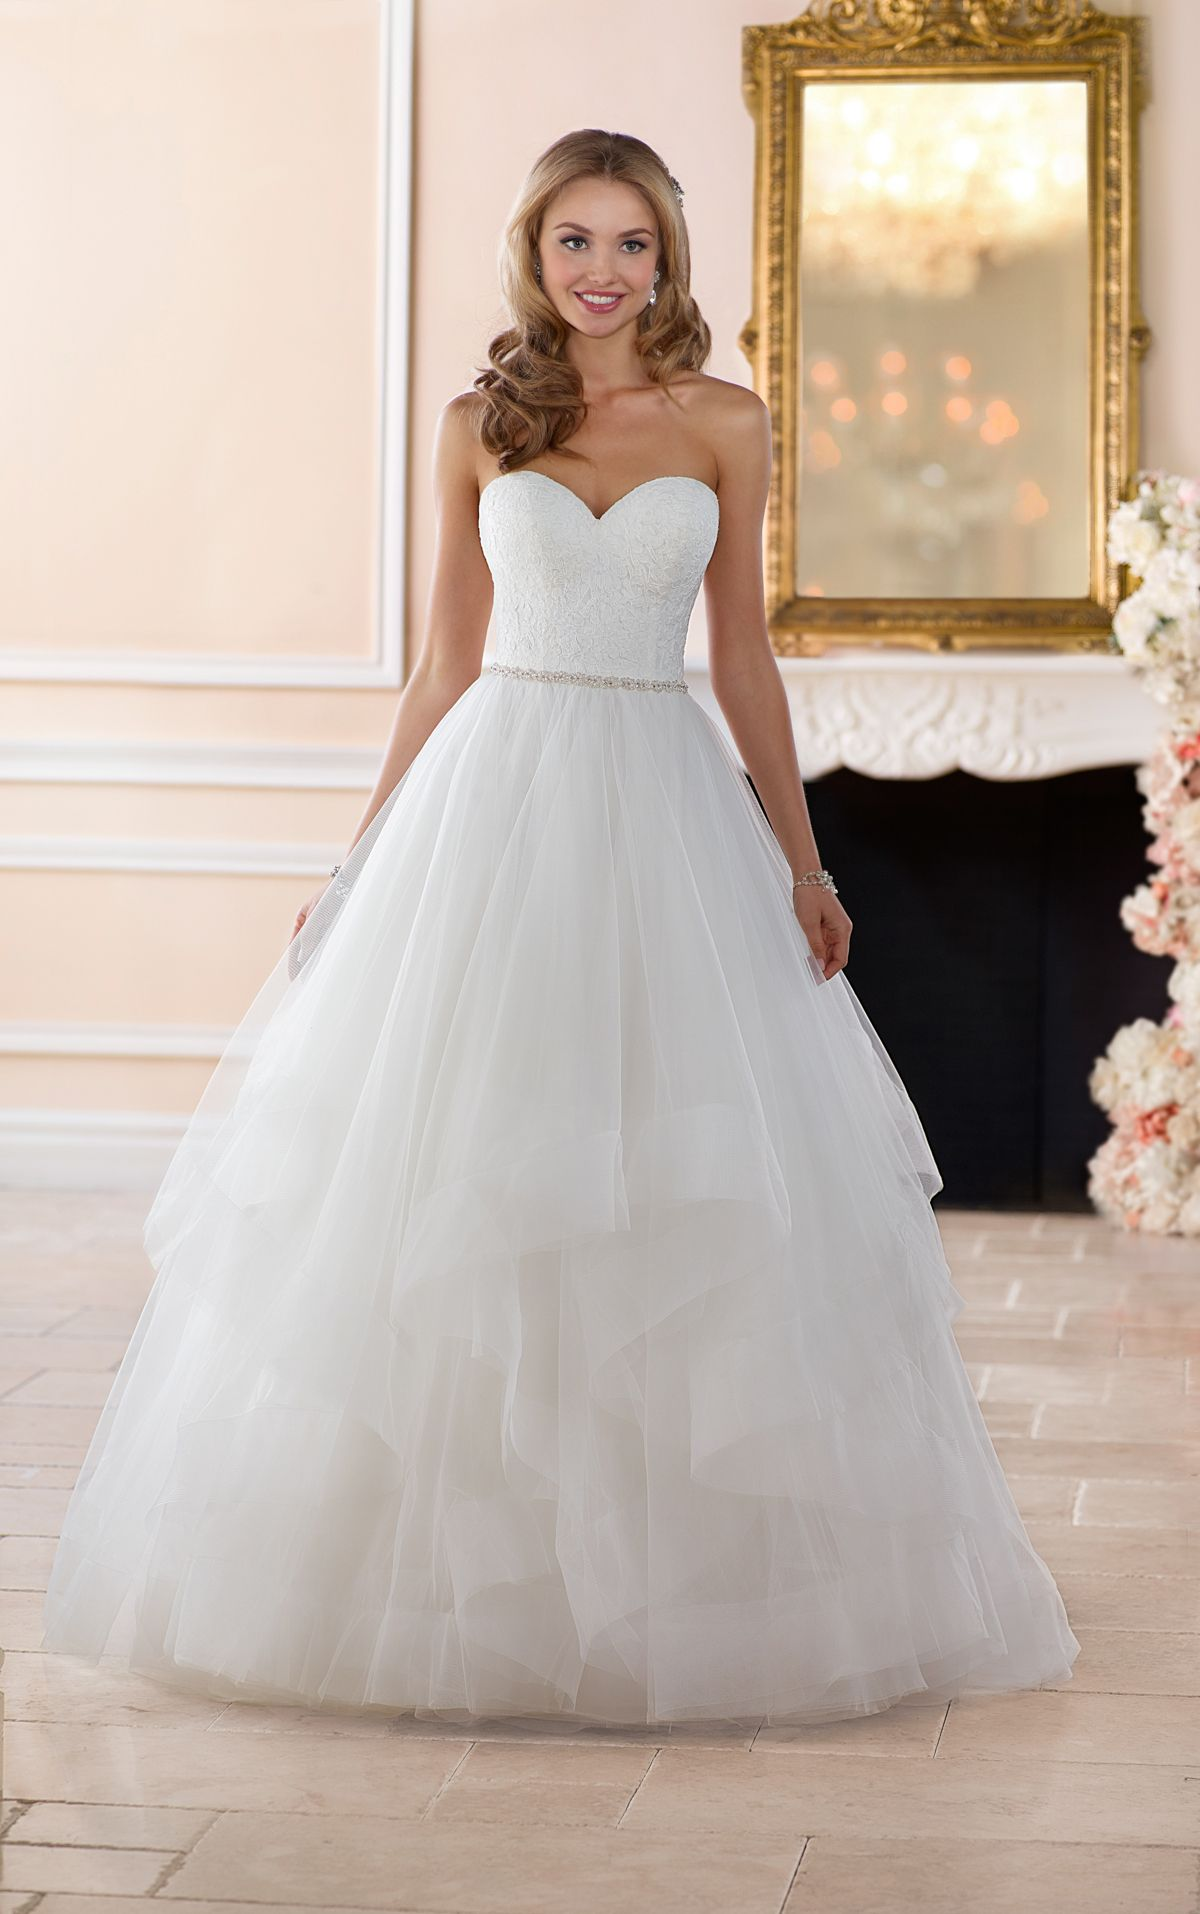 Wedding dresses stella york ball gowns and wedding dress